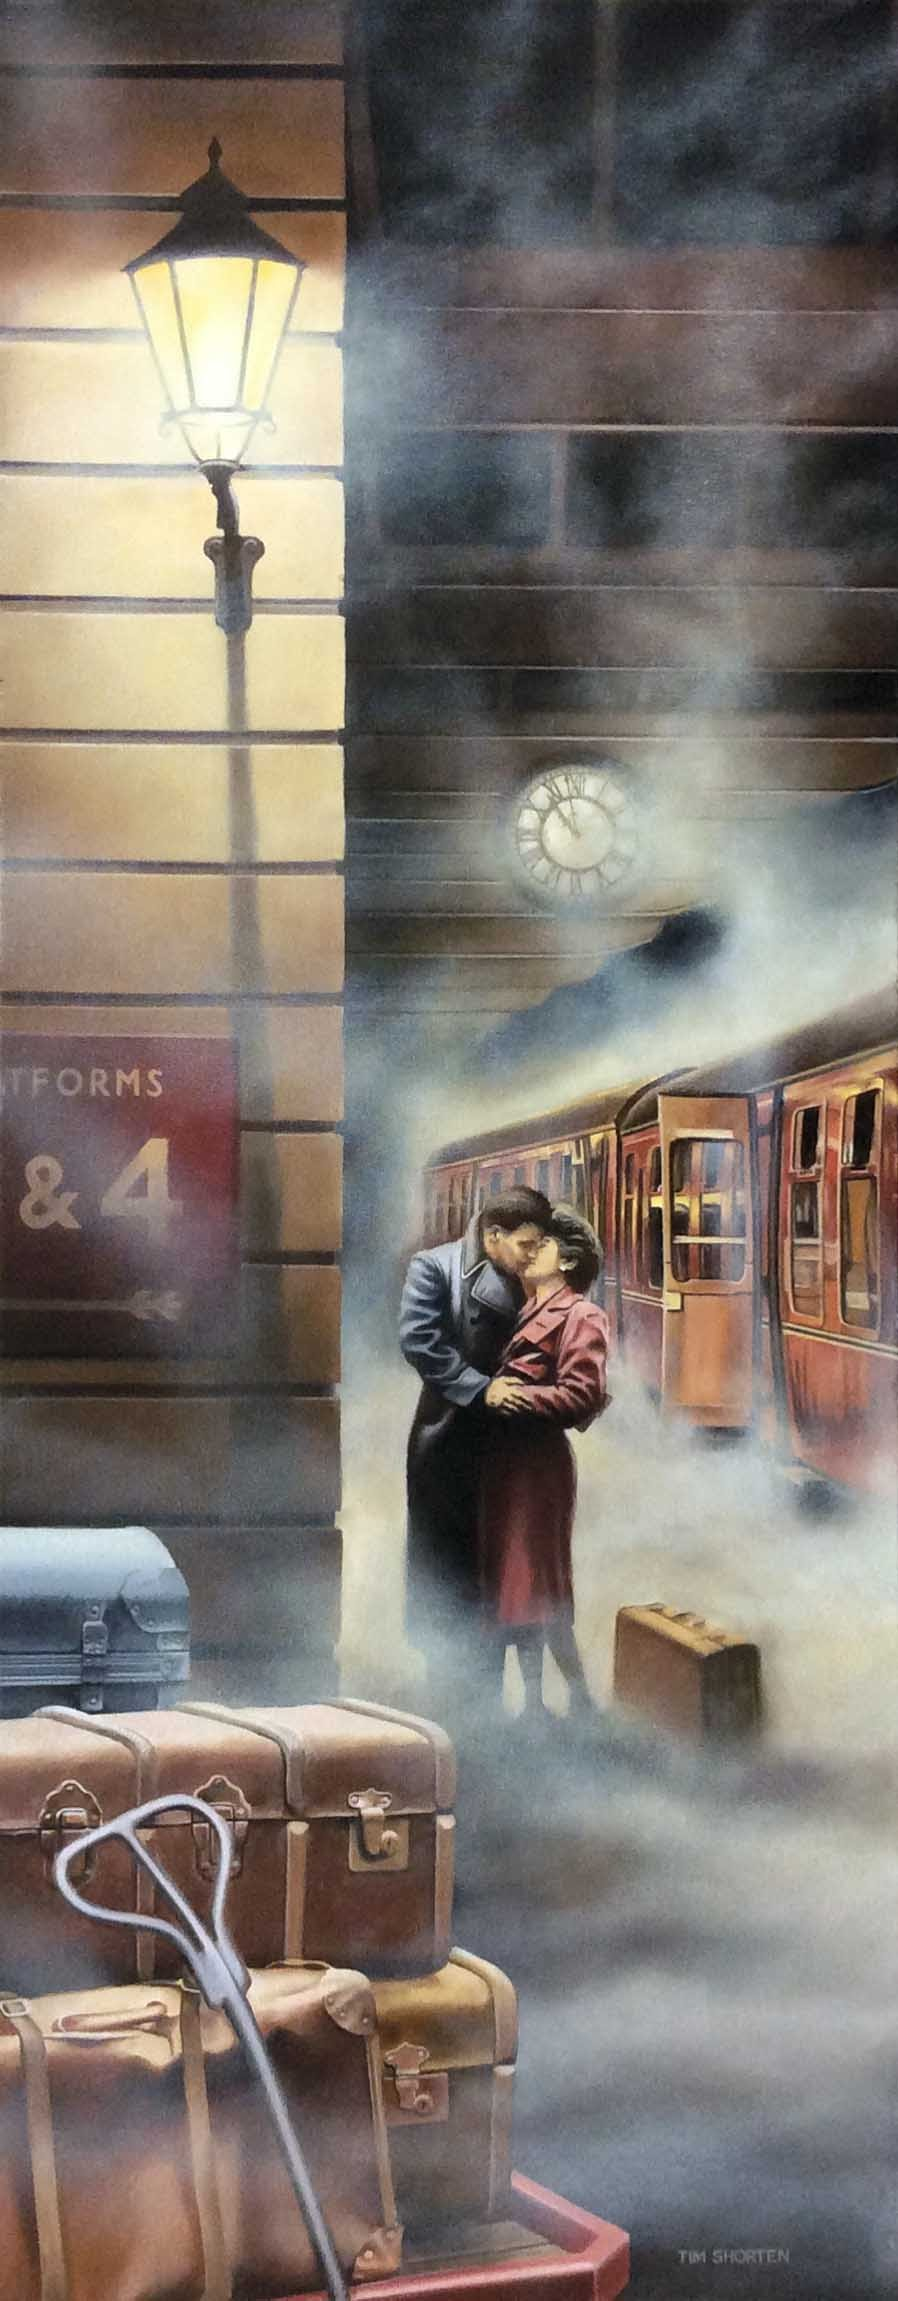 Tim Shorten Kissing couple by train